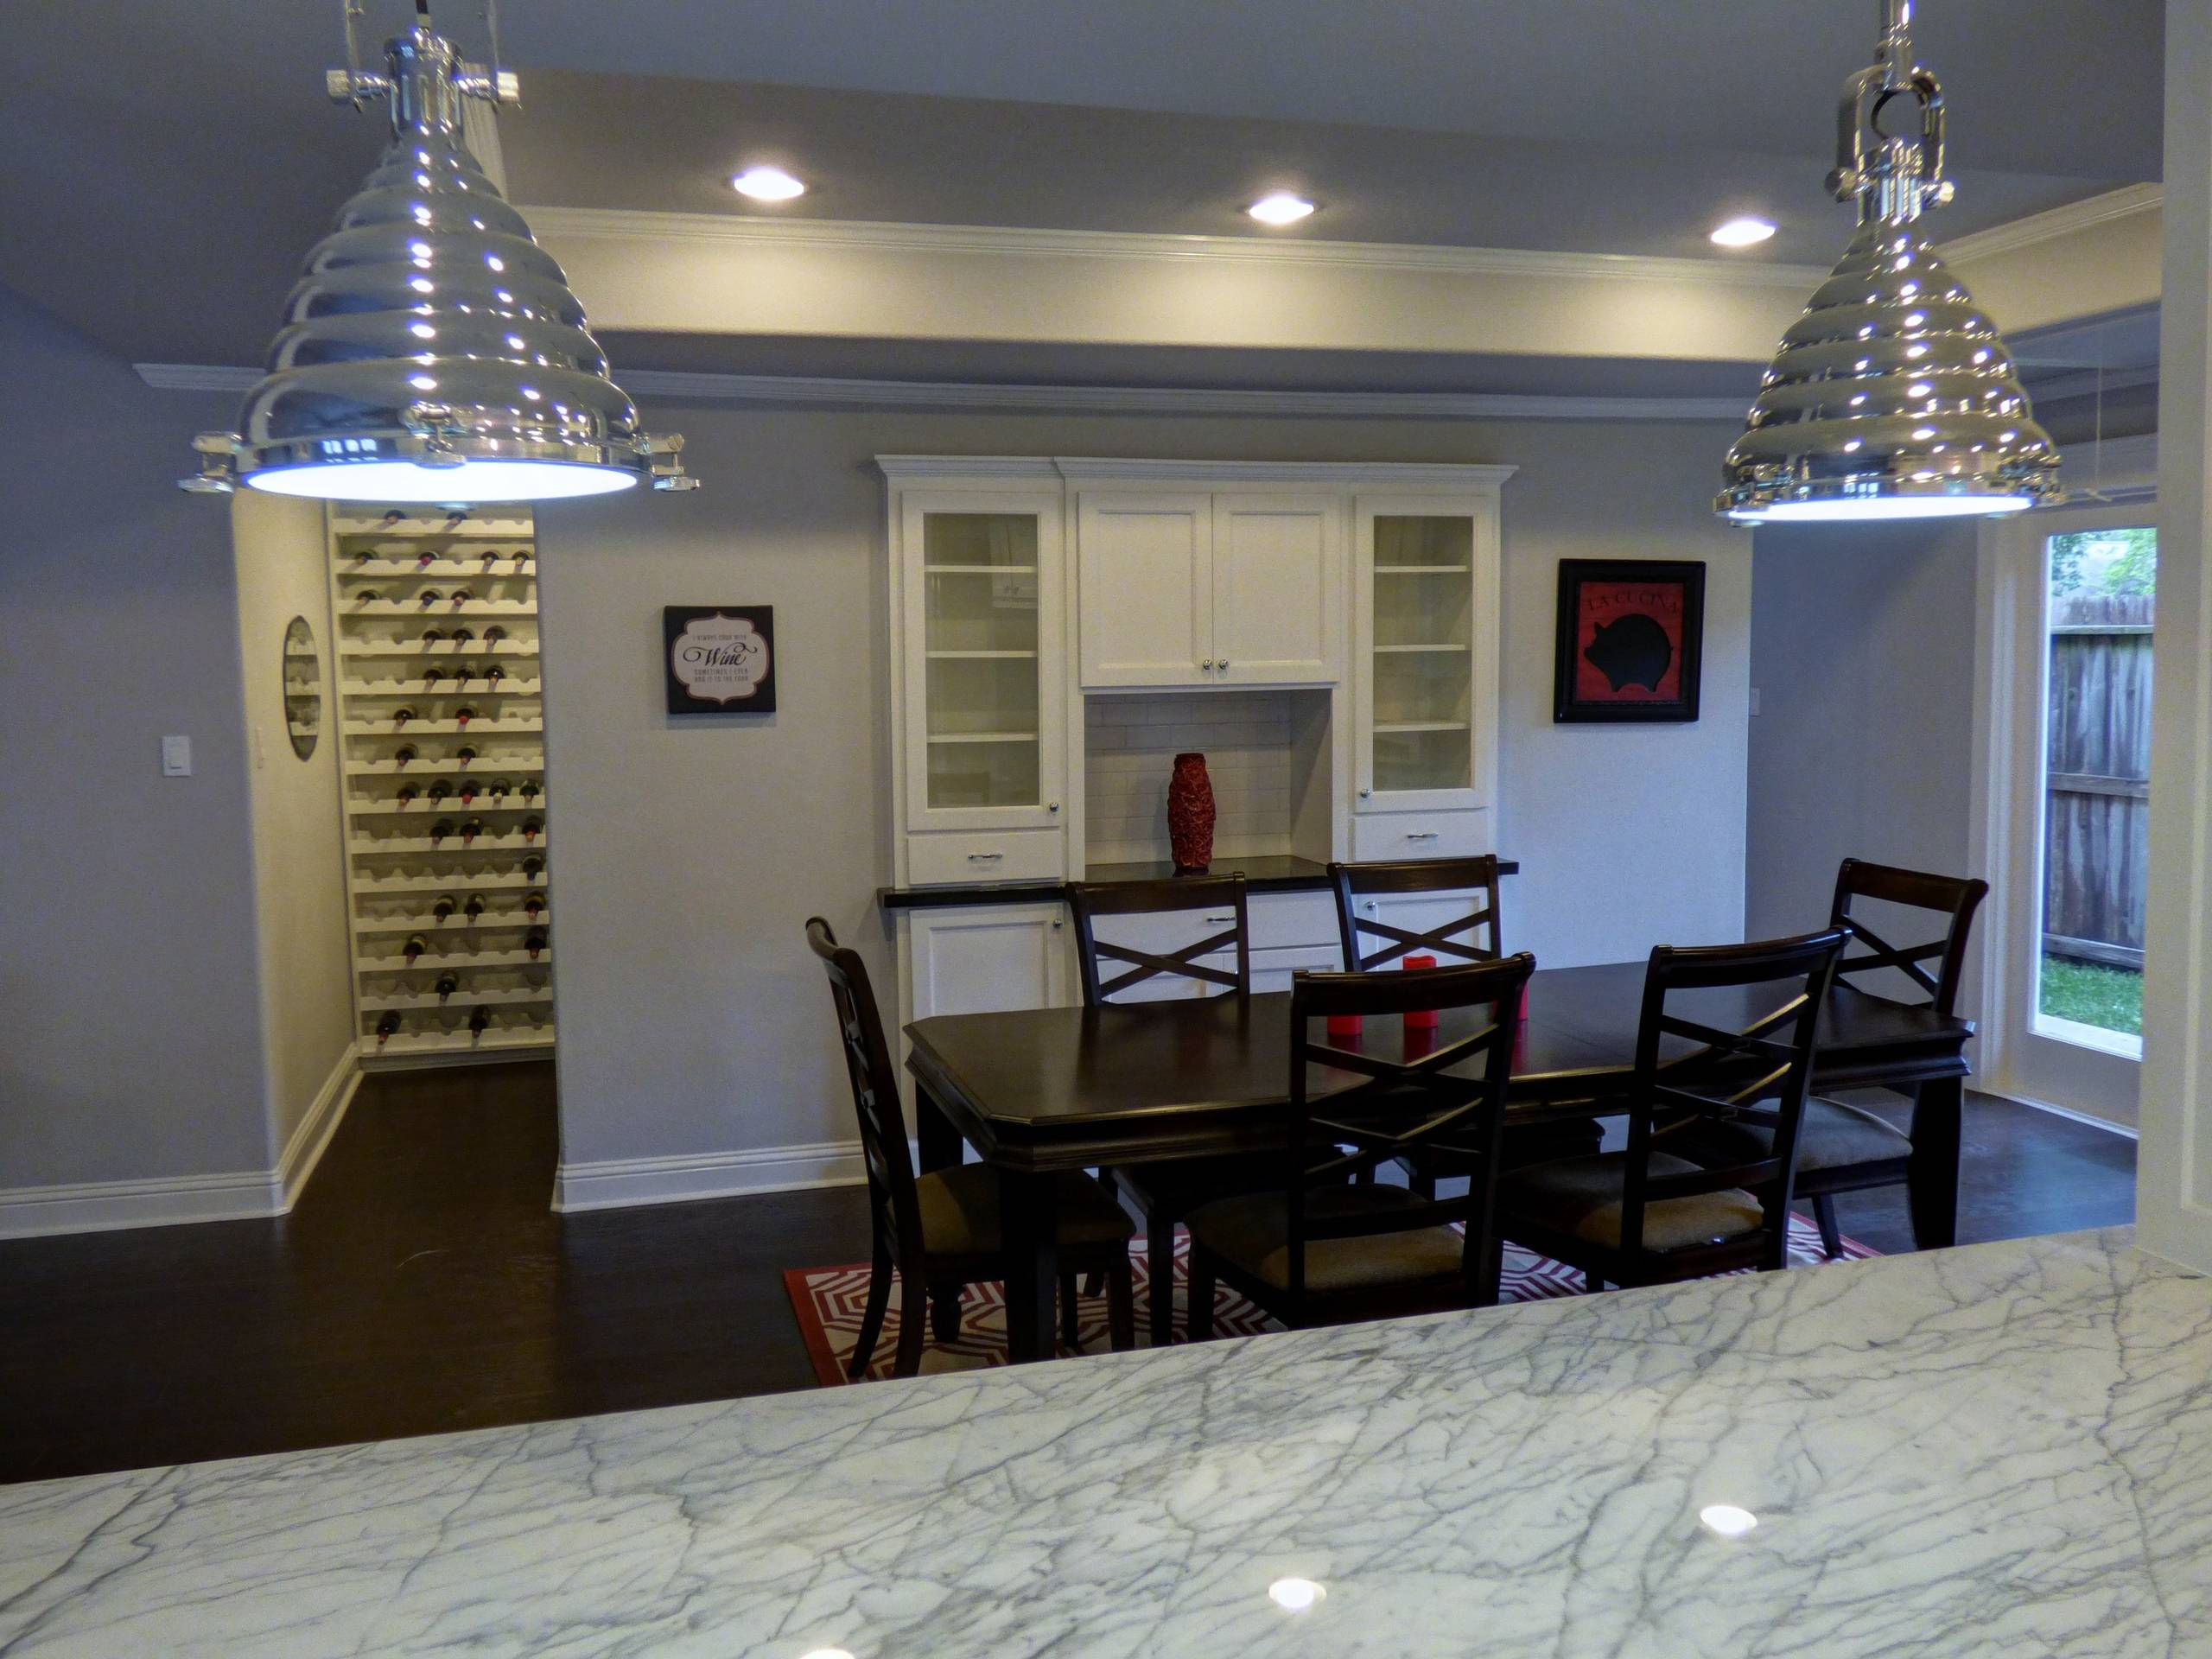 The Oasis of Westbury Dining Room